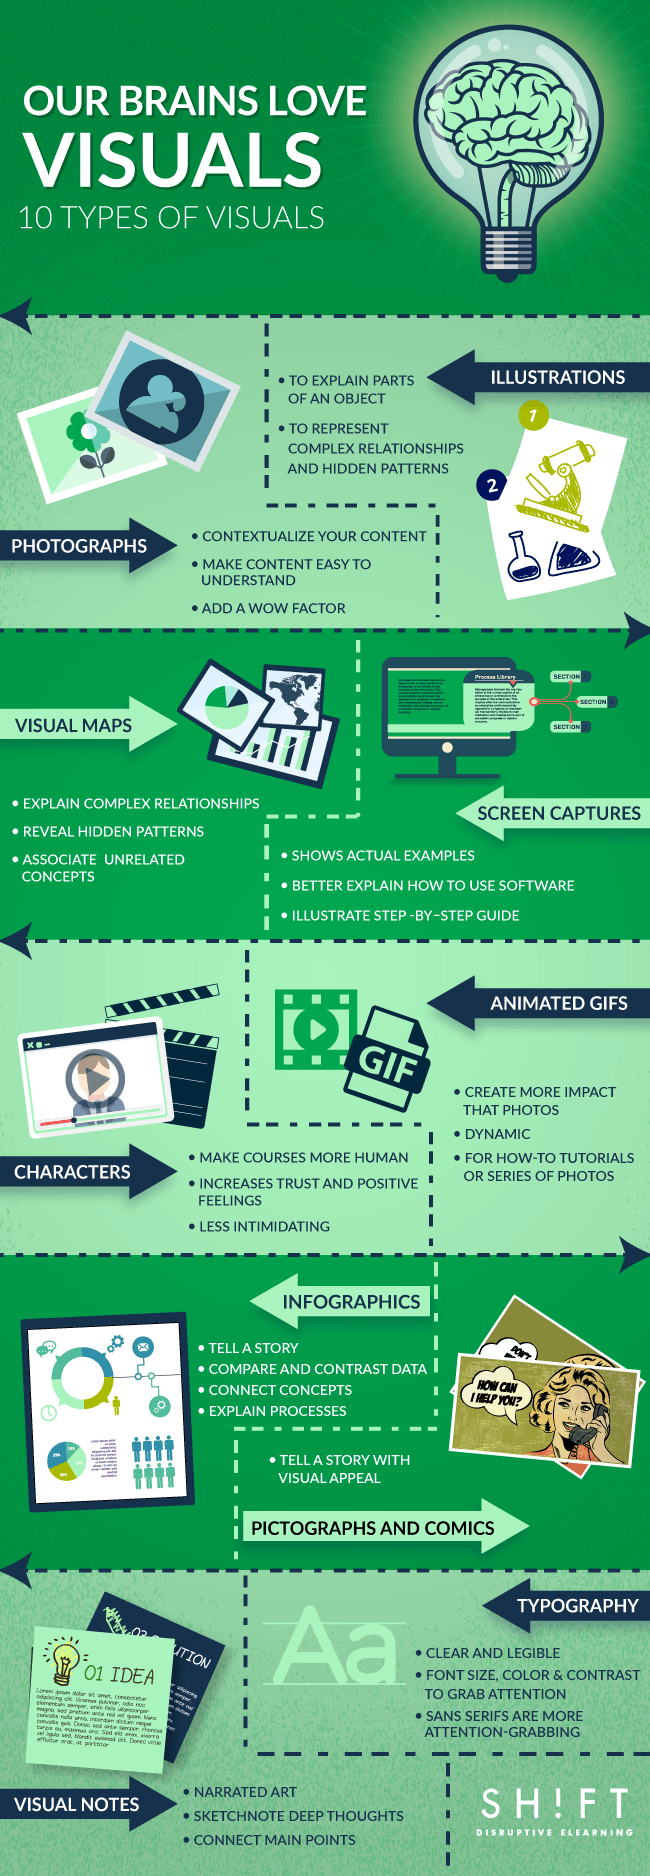 Types of Visual Content to Improve Learner Engagement Infographic